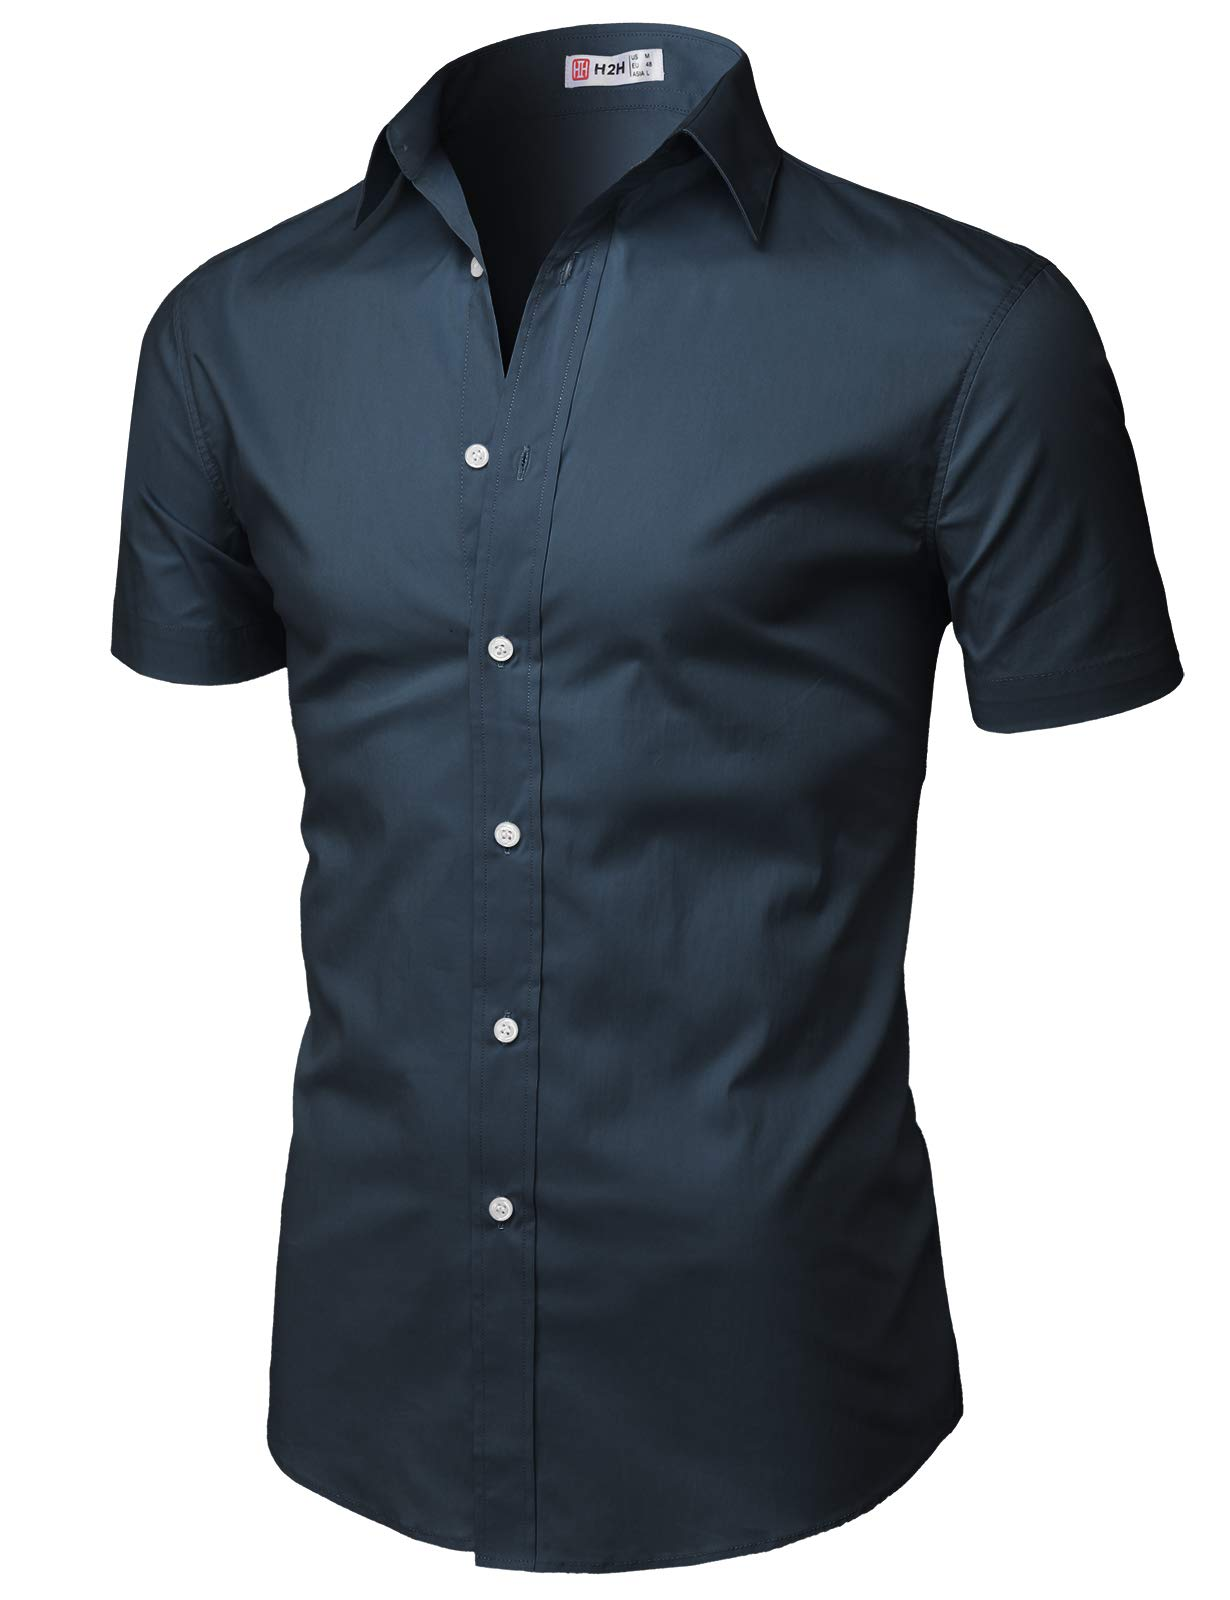 H2H Mens Casual Button Down Short Sleeve Shirts Basic Designed NAVY US M/Asia L (KMTSTS0134)